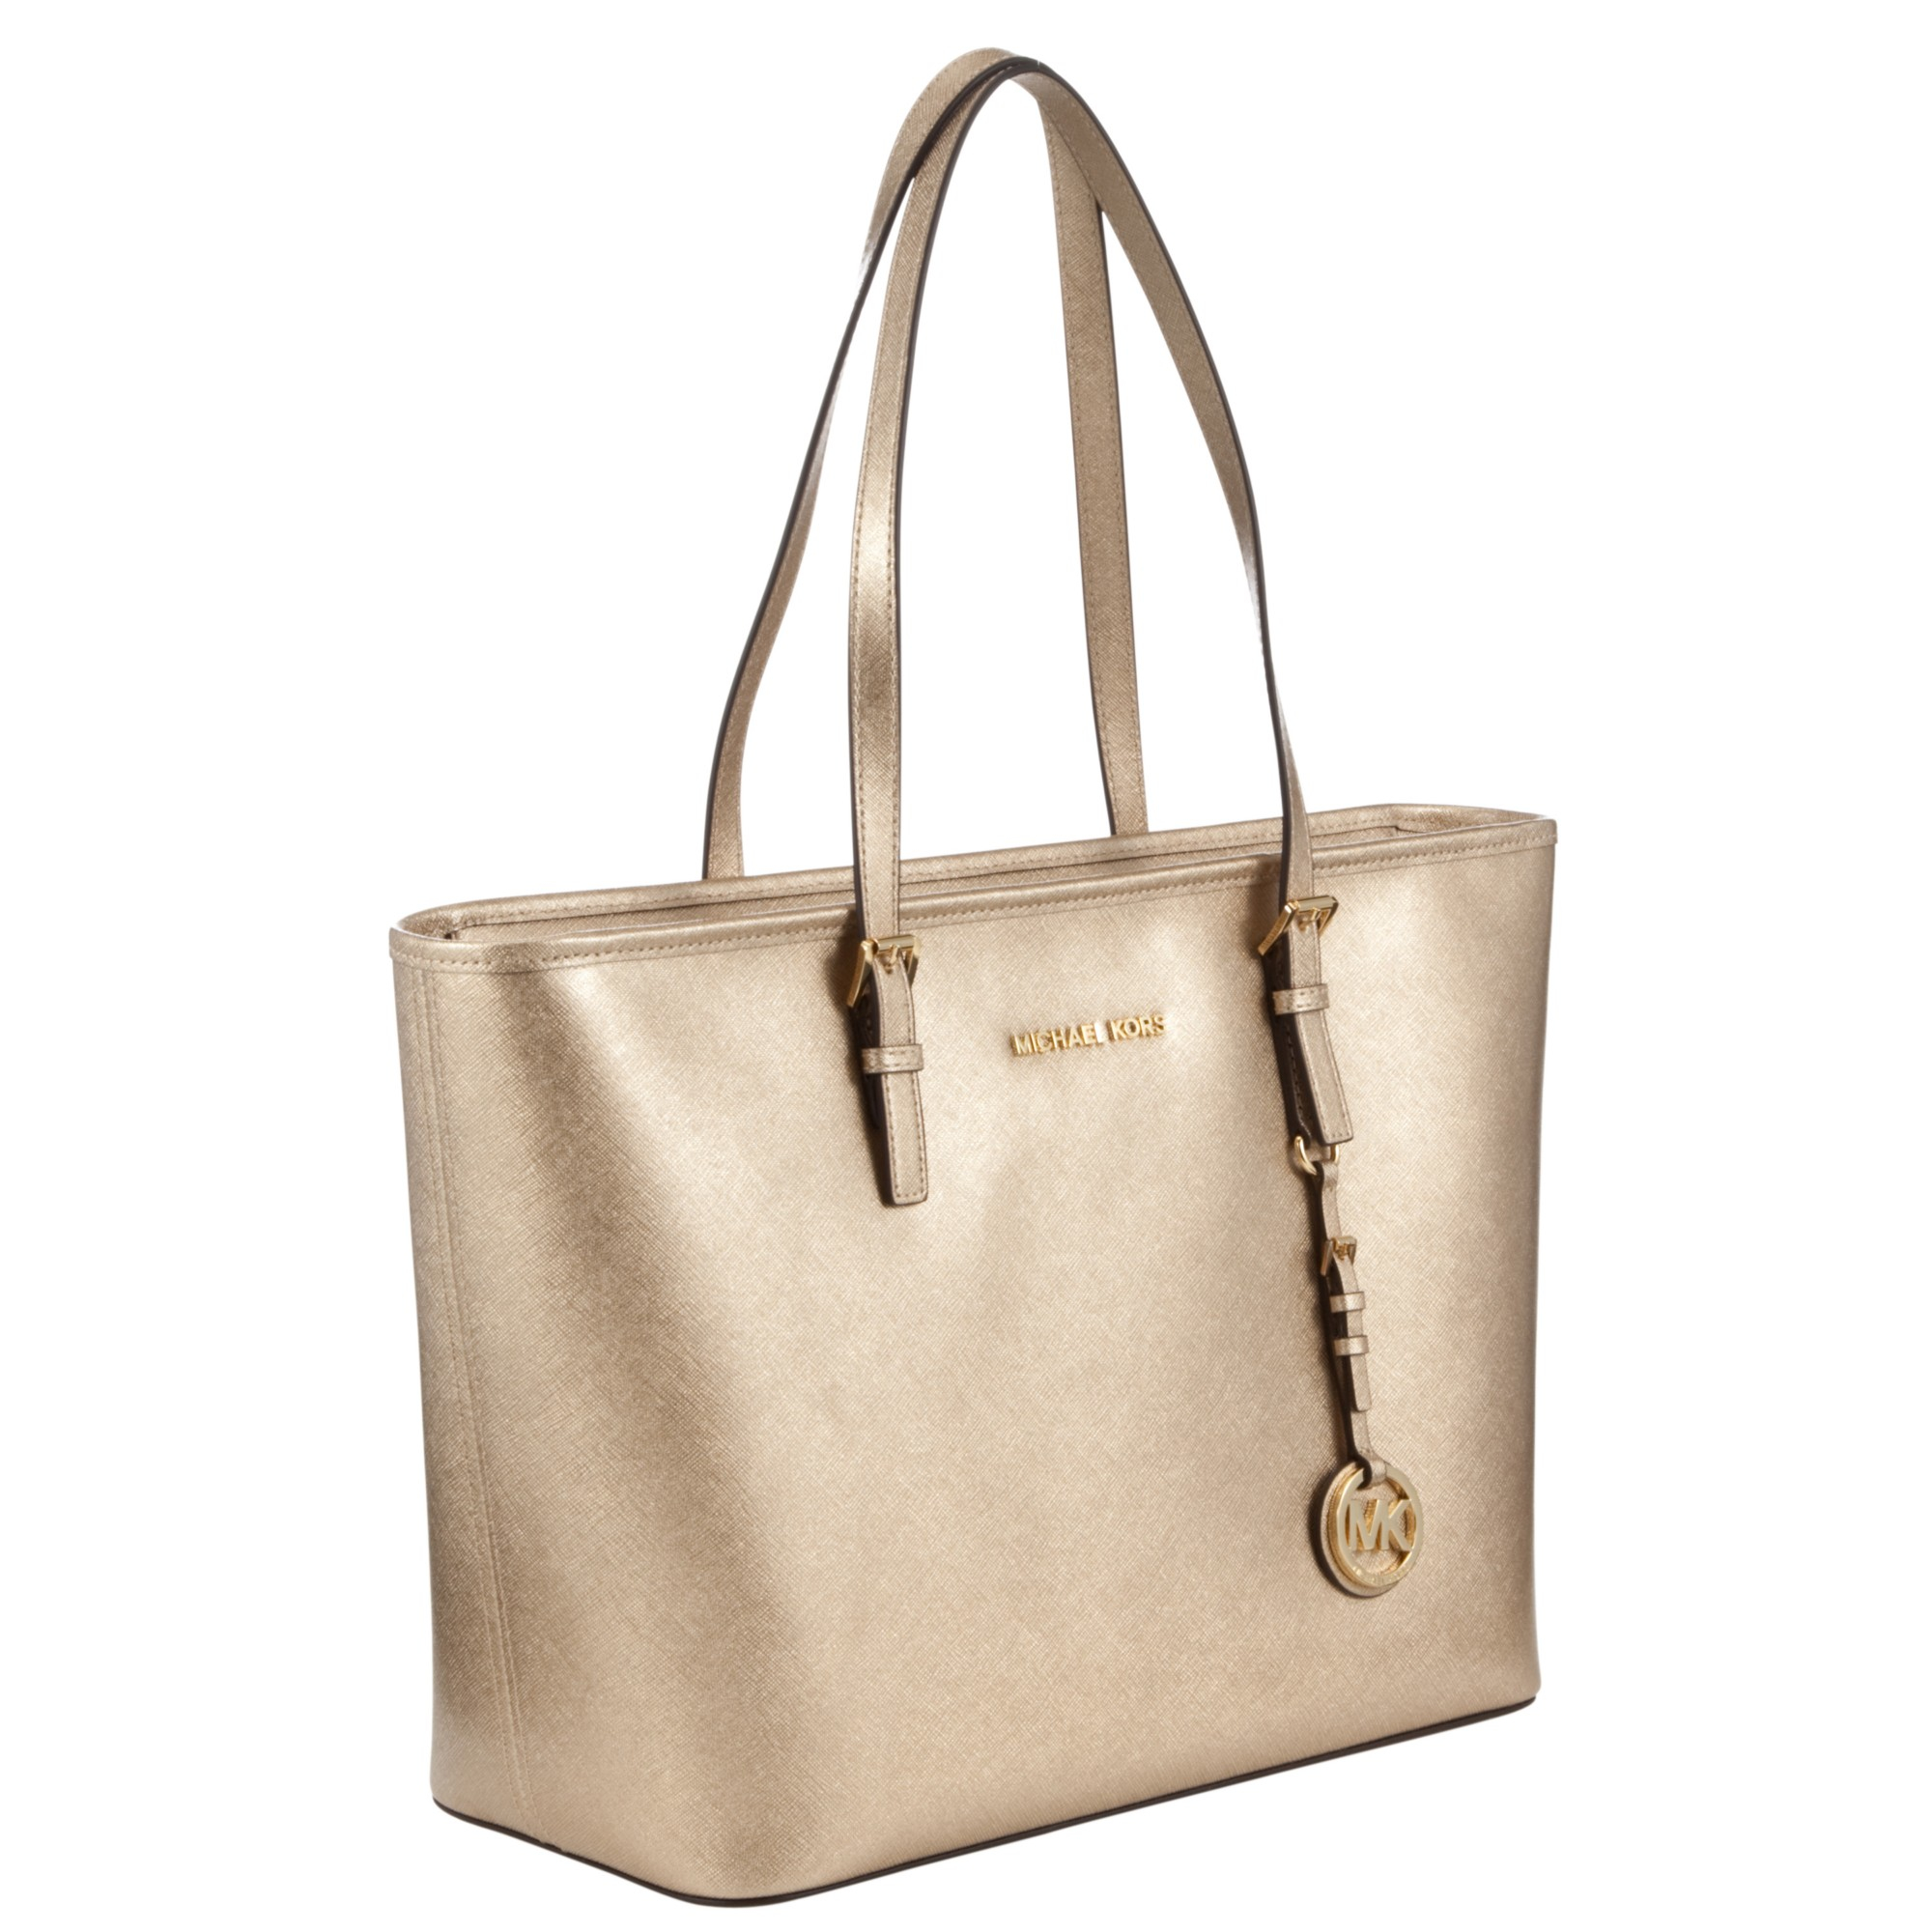 Bolsa Michael Kors Jet Set Saffiano : Pin bolsa michael kors saffiano gold on